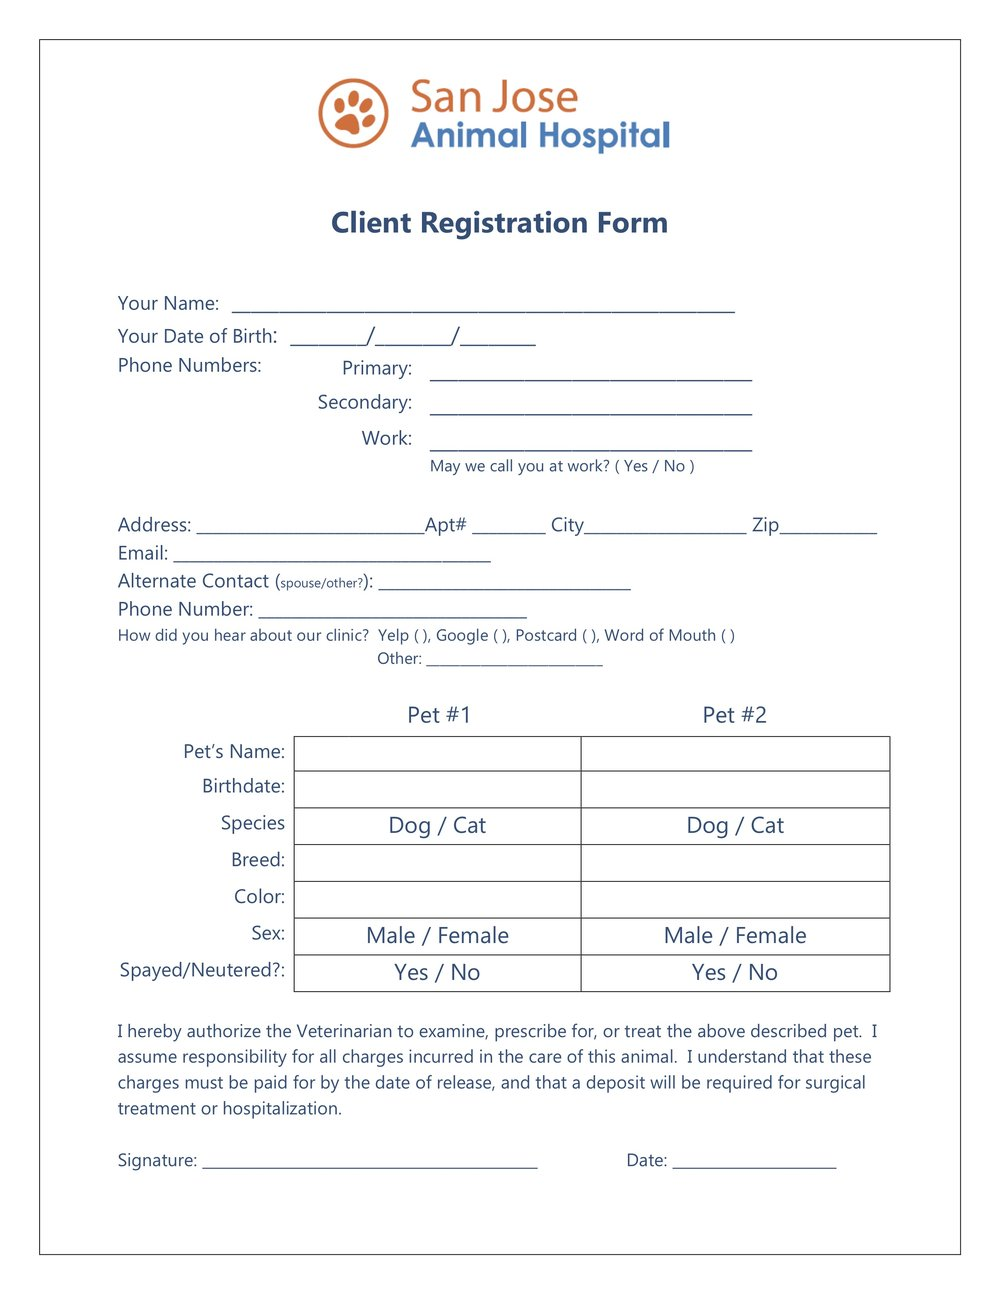 Client+Registration+Form.jpg